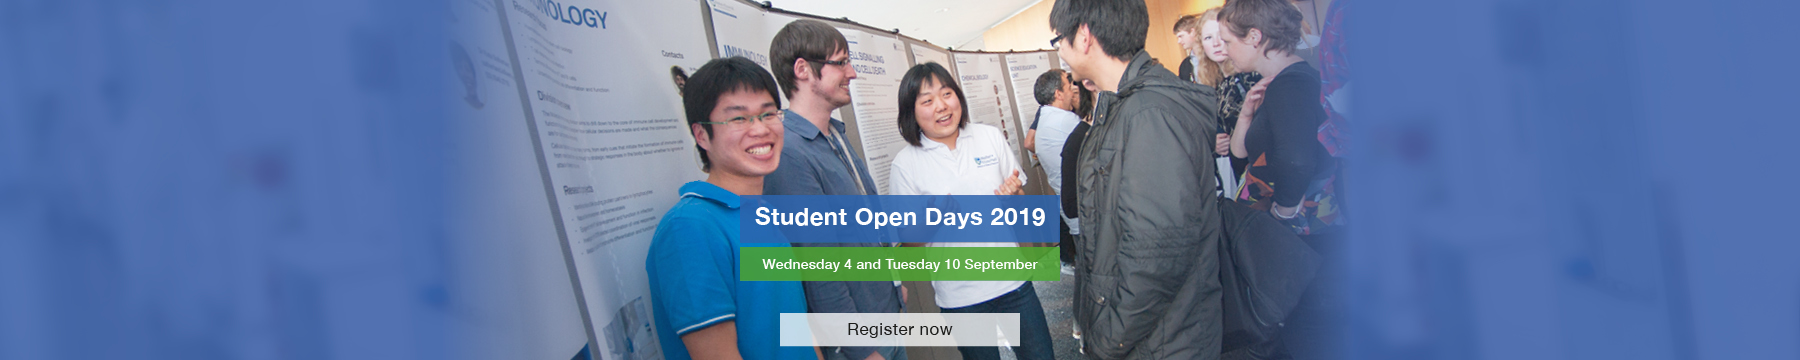 Student Open Days 4 and 10 September 2019